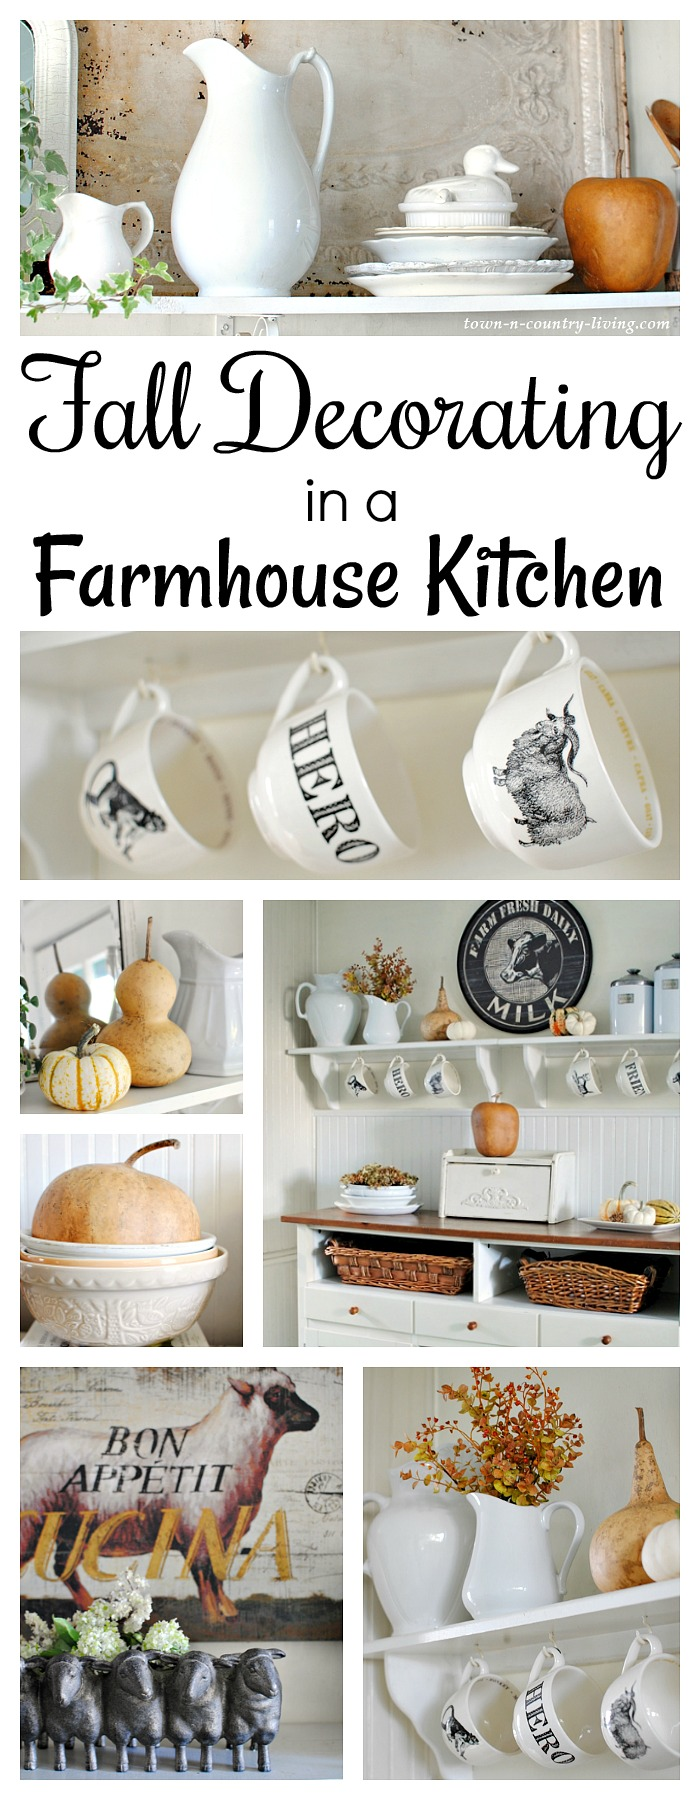 Fall Decorating in My Farmhouse Kitchen - Town & Country Living